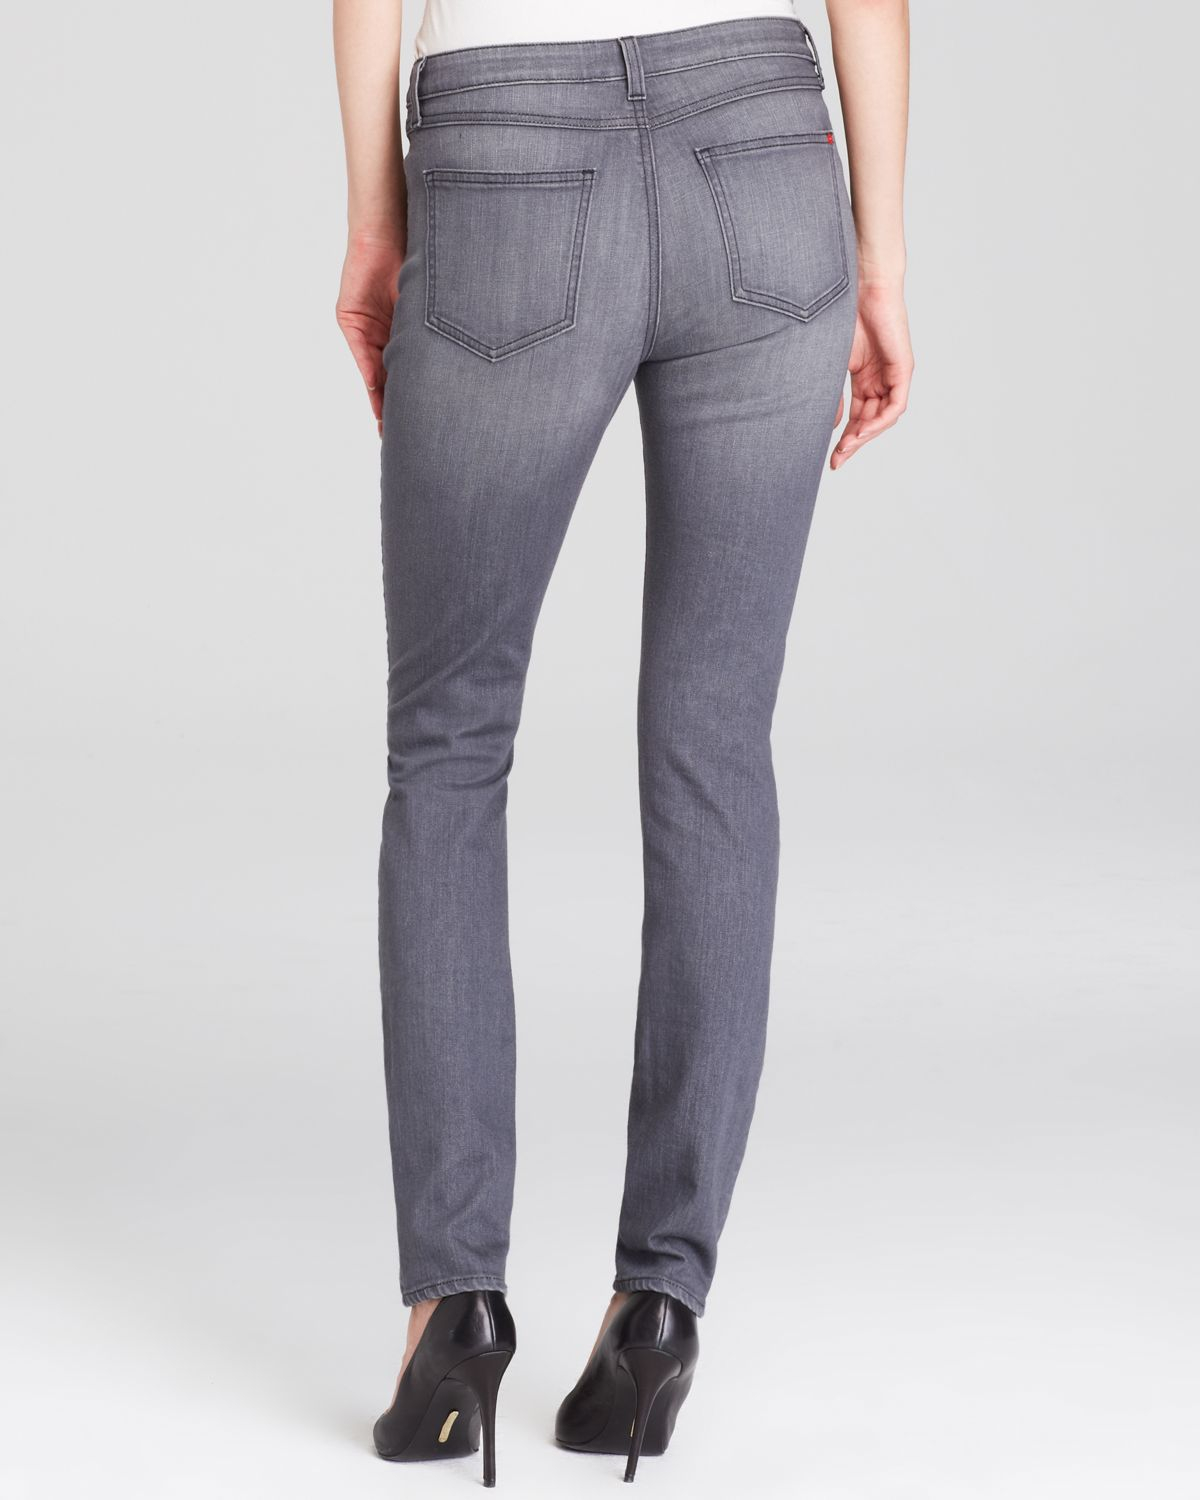 Spanx Spanx® Denim Classic Skinny Jeans In Grey in Gray